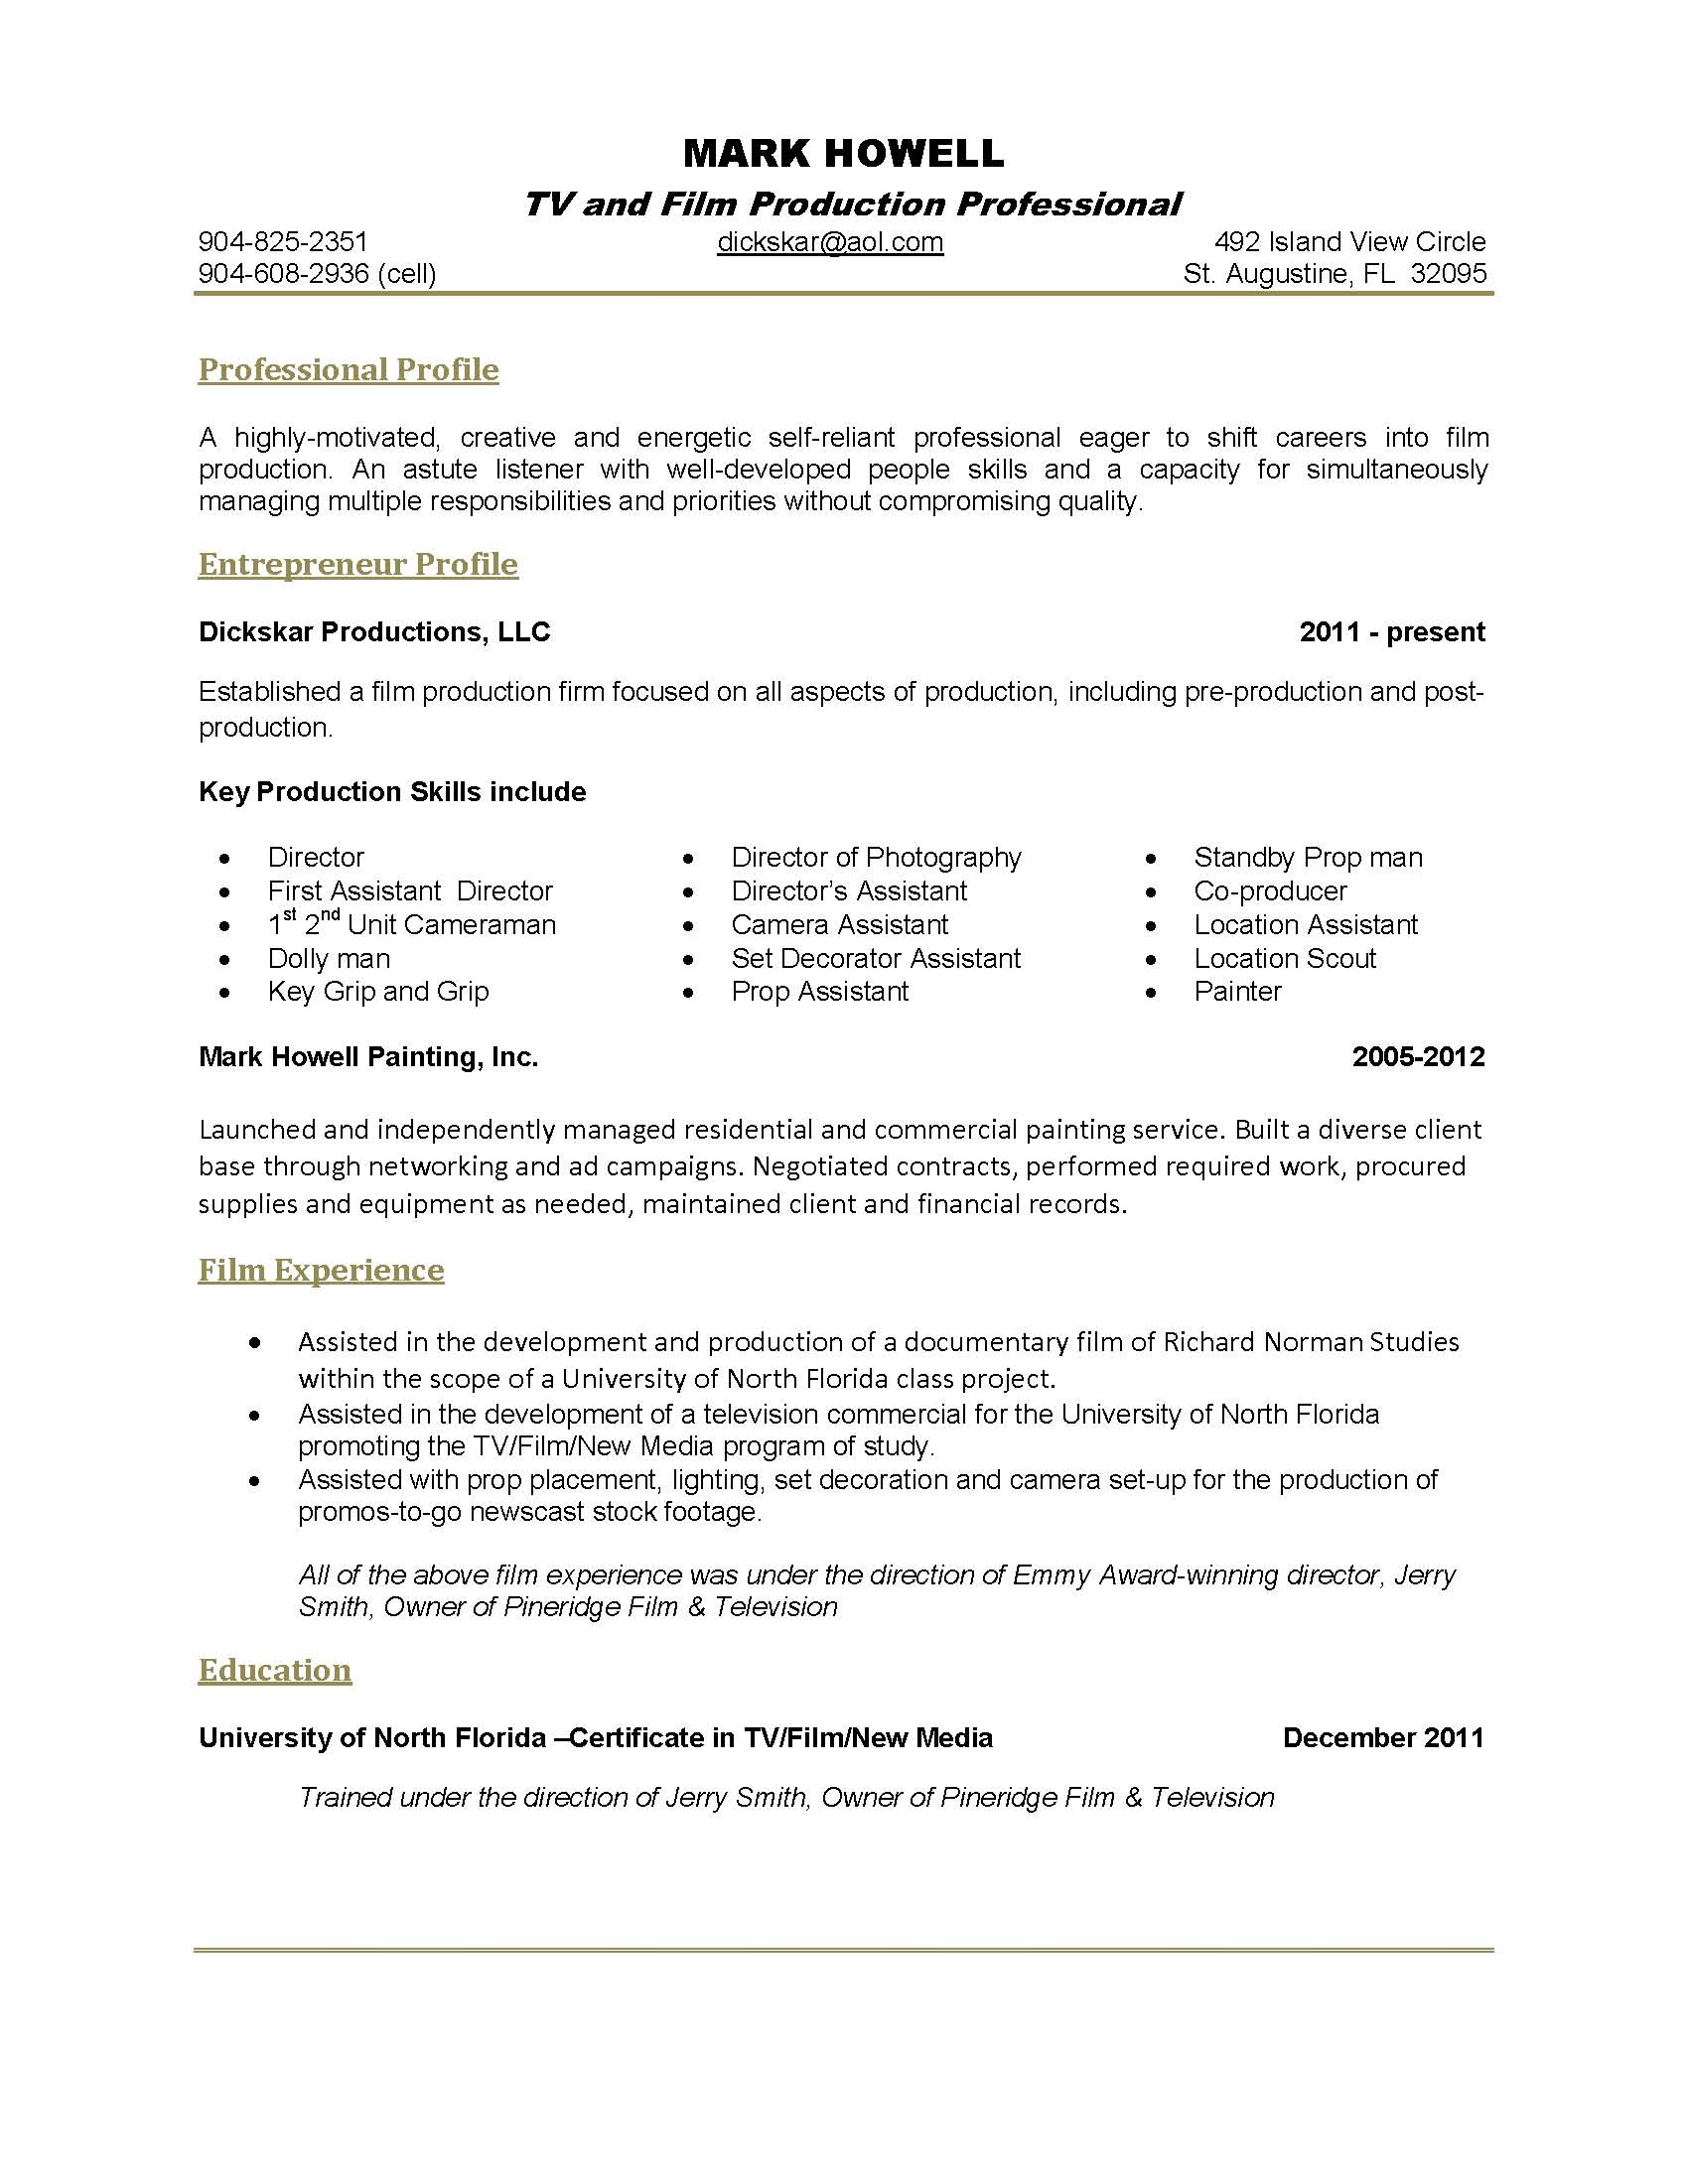 Resume Pages Resume Tips Exploring Communication On All Levels